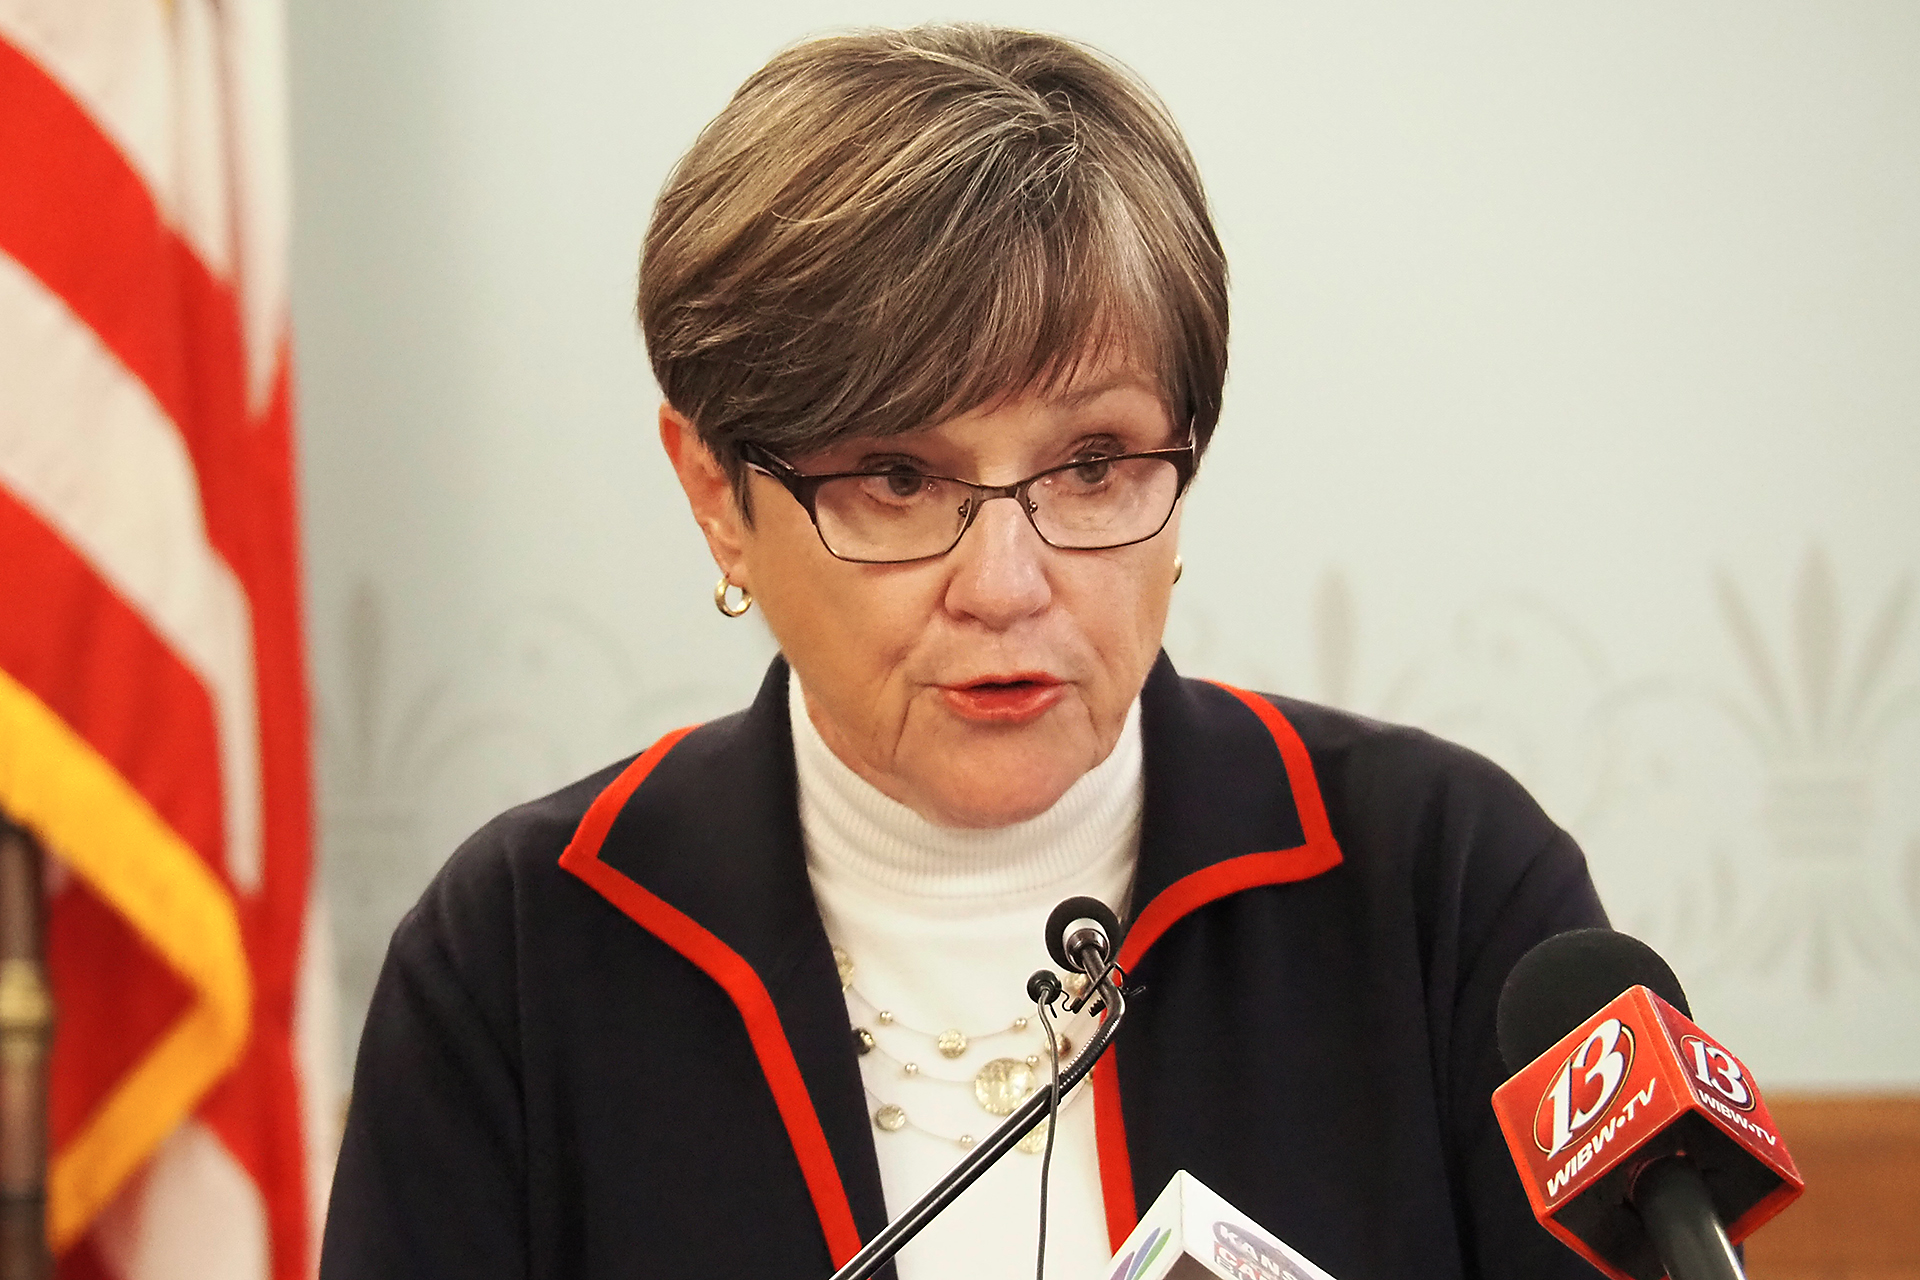 Gov. Laura Kelly said the $108 million in unexpected state tax revenue during the first quarter of the current fiscal year doesn't alleviate the need to be frugal in anticipation of future budget problems exacerbated by COVID-19. (Sherman Smith/Kansas Reflector)